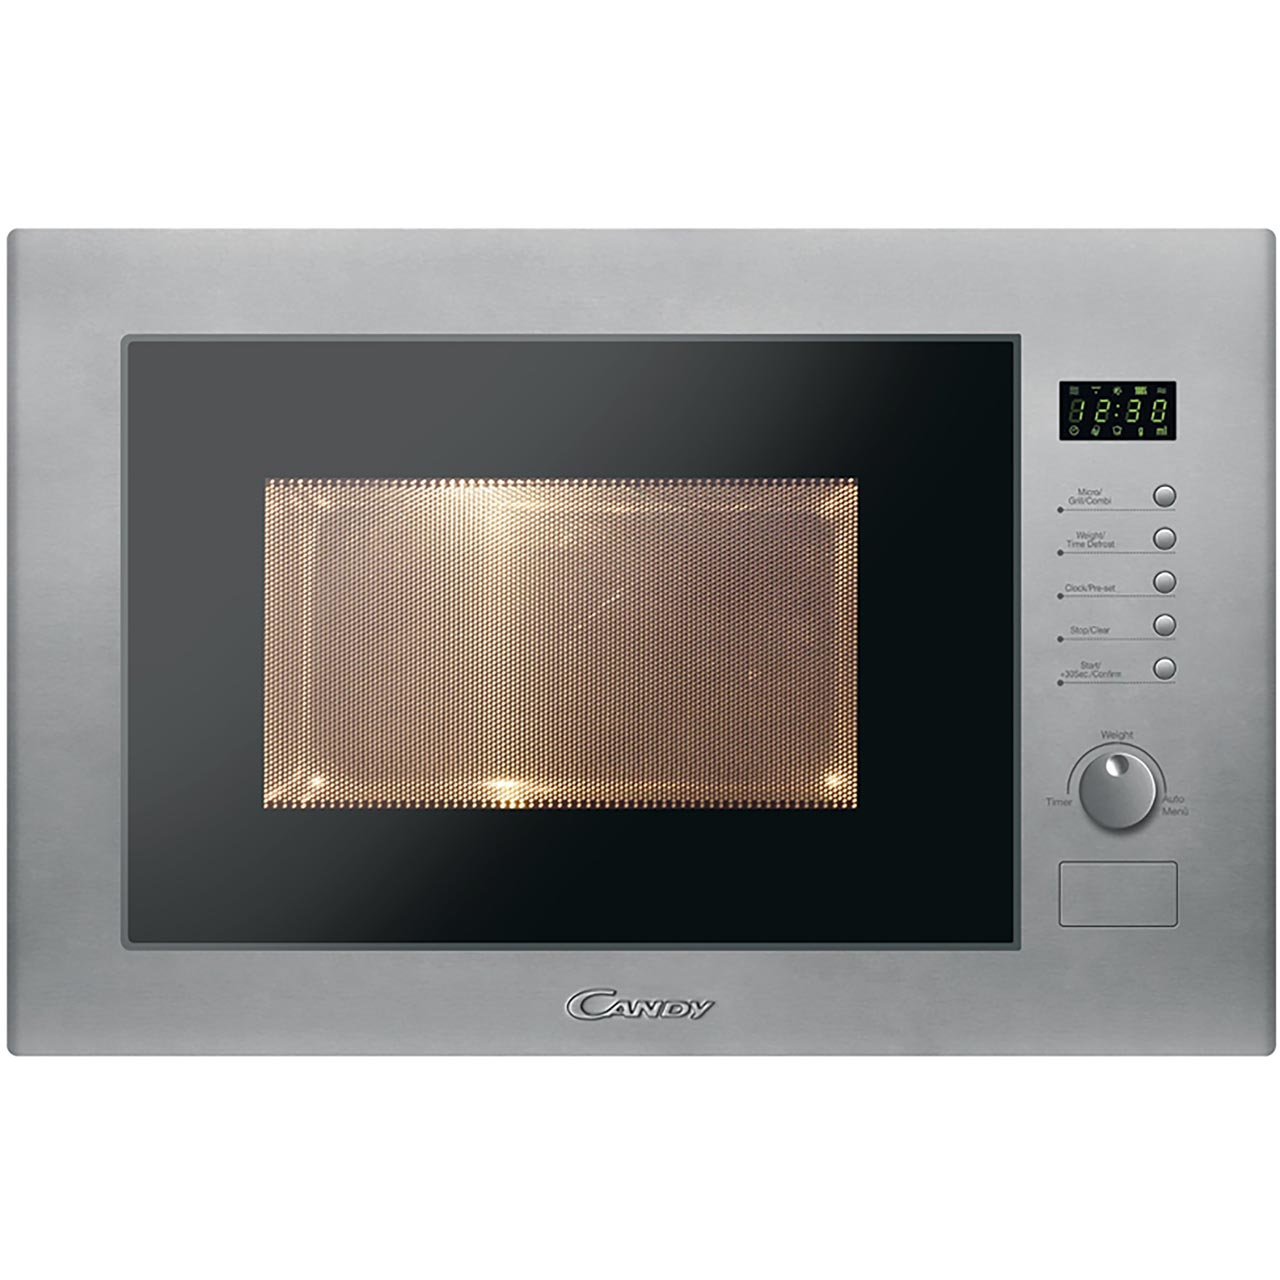 Candy Microwave Oven Review: Candy MIC25GDFX Built In Microwave Review